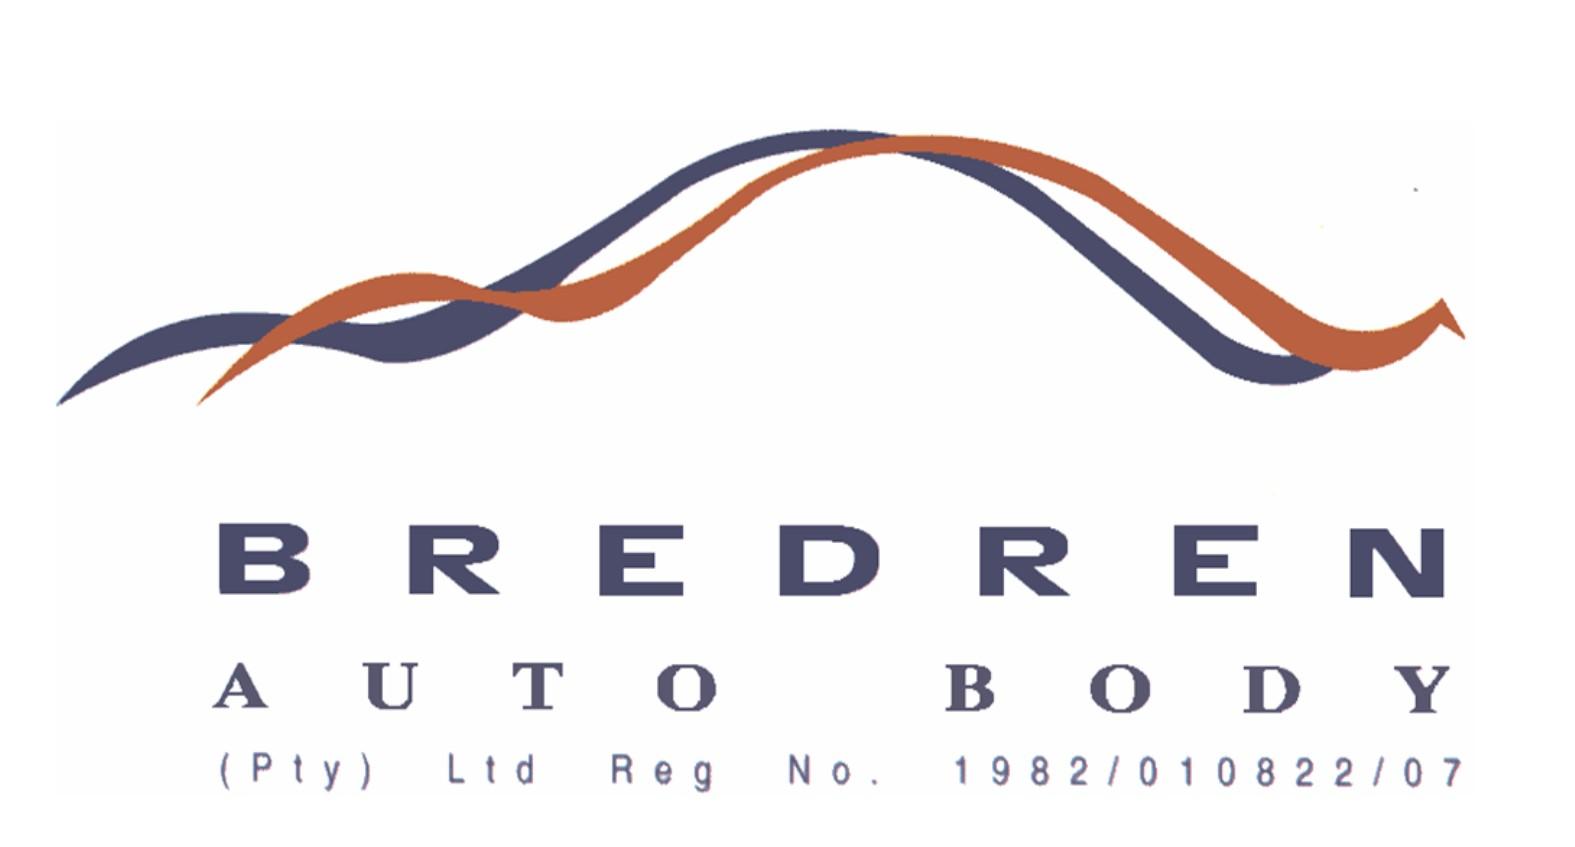 Logo of Bredren Auto Body